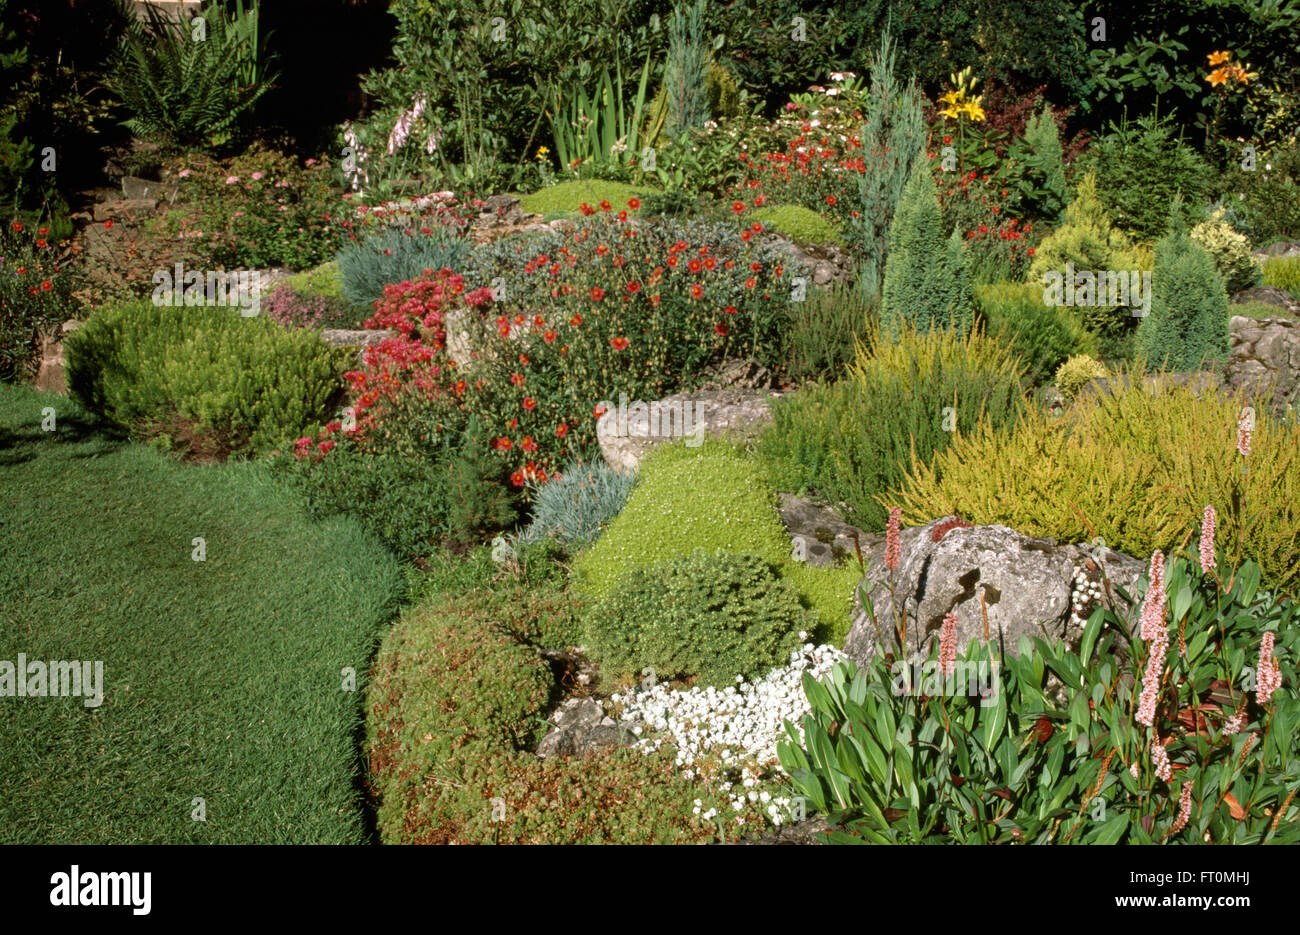 Small conifers and red helianthemums in a well stocked seventies rockery garden - Stock Image